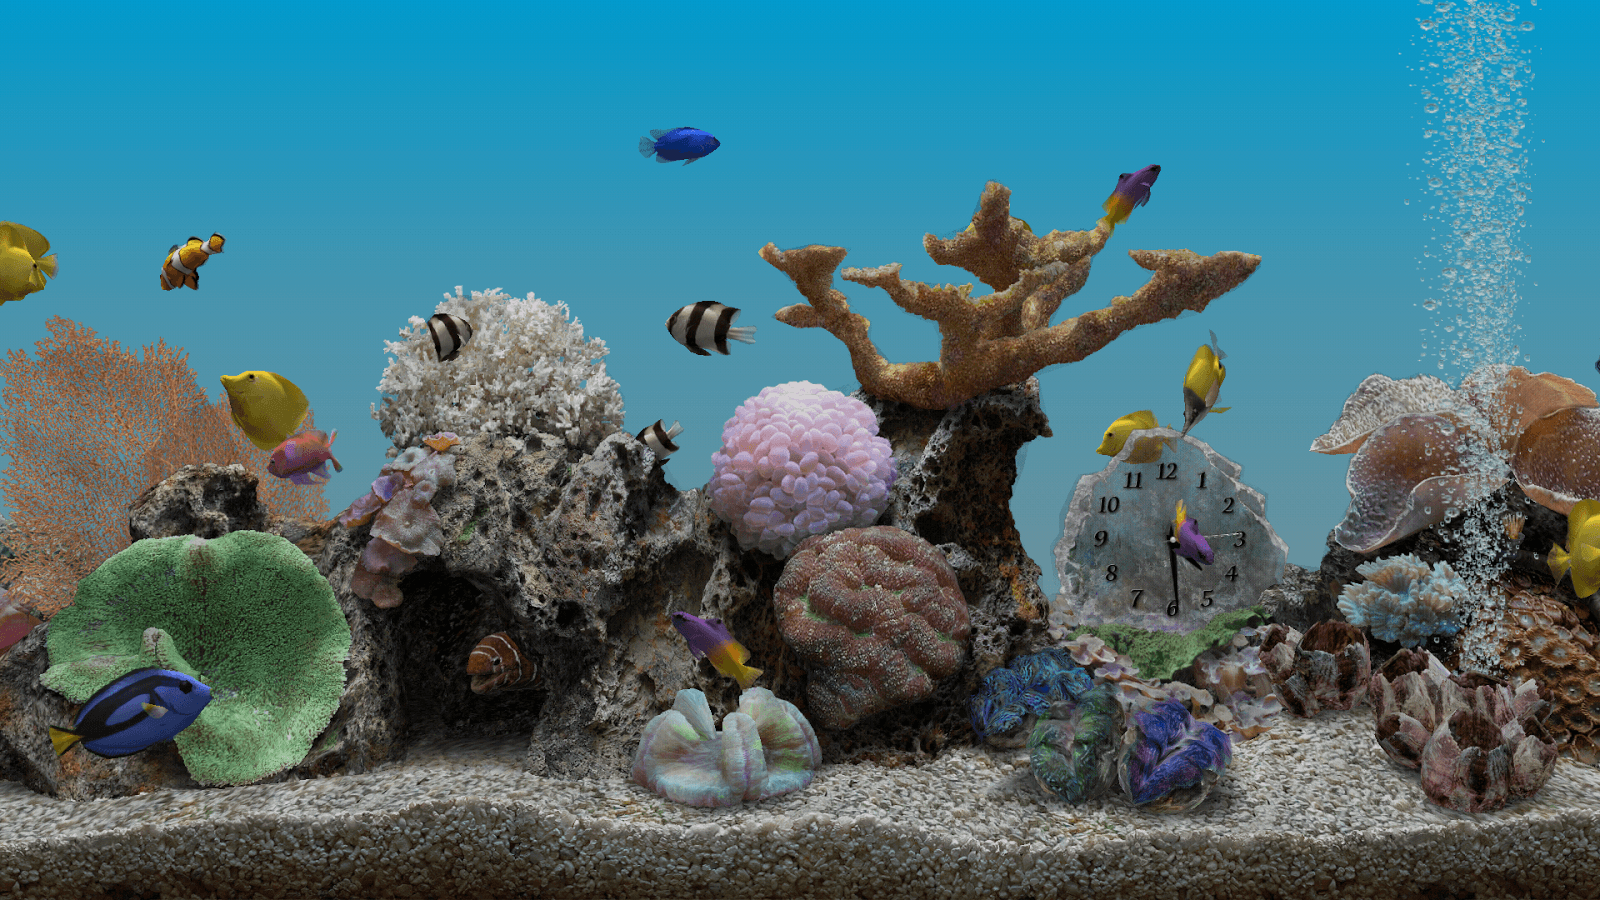 Marine Aquarium widescreen for desktop